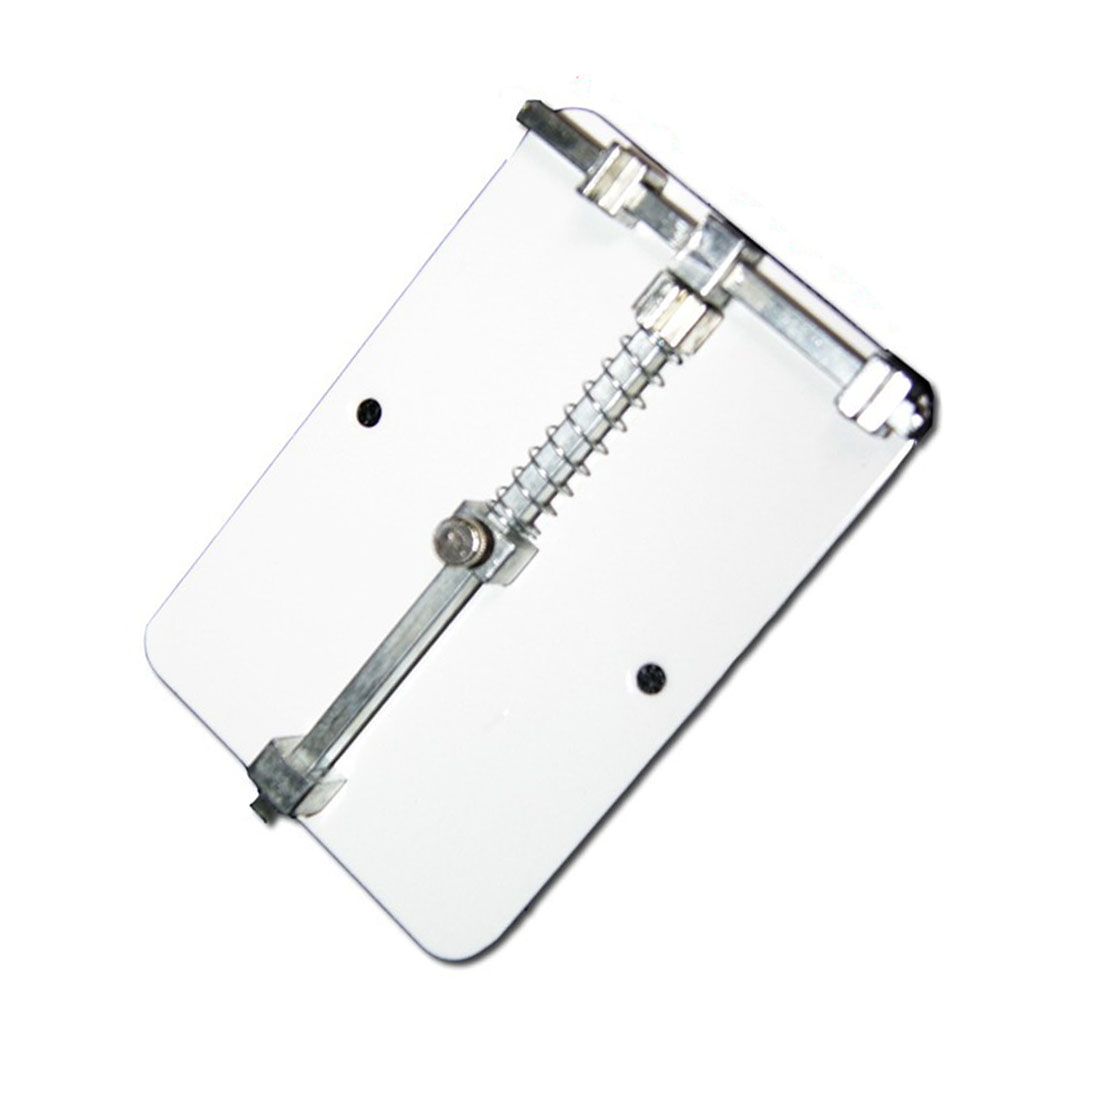 1pc High Quality 8*12cm Fixture Motherboard PCB Holder For Mobile Phone Board Repair Tool